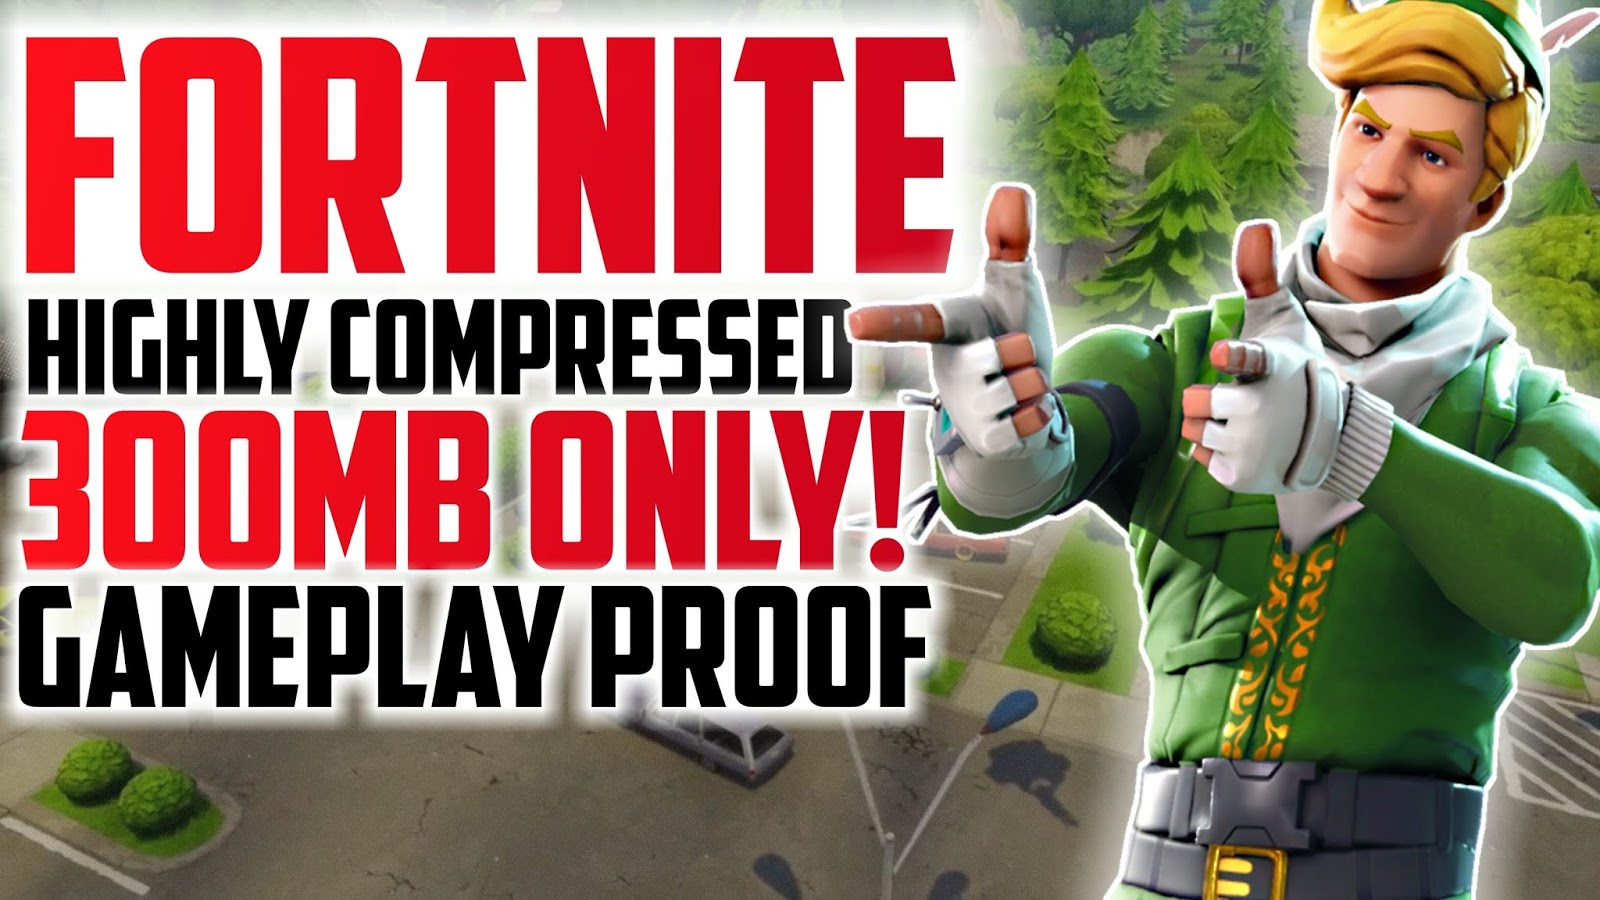 300MB) Fortnite Highly Compressed For PC For 2GB RAM PC